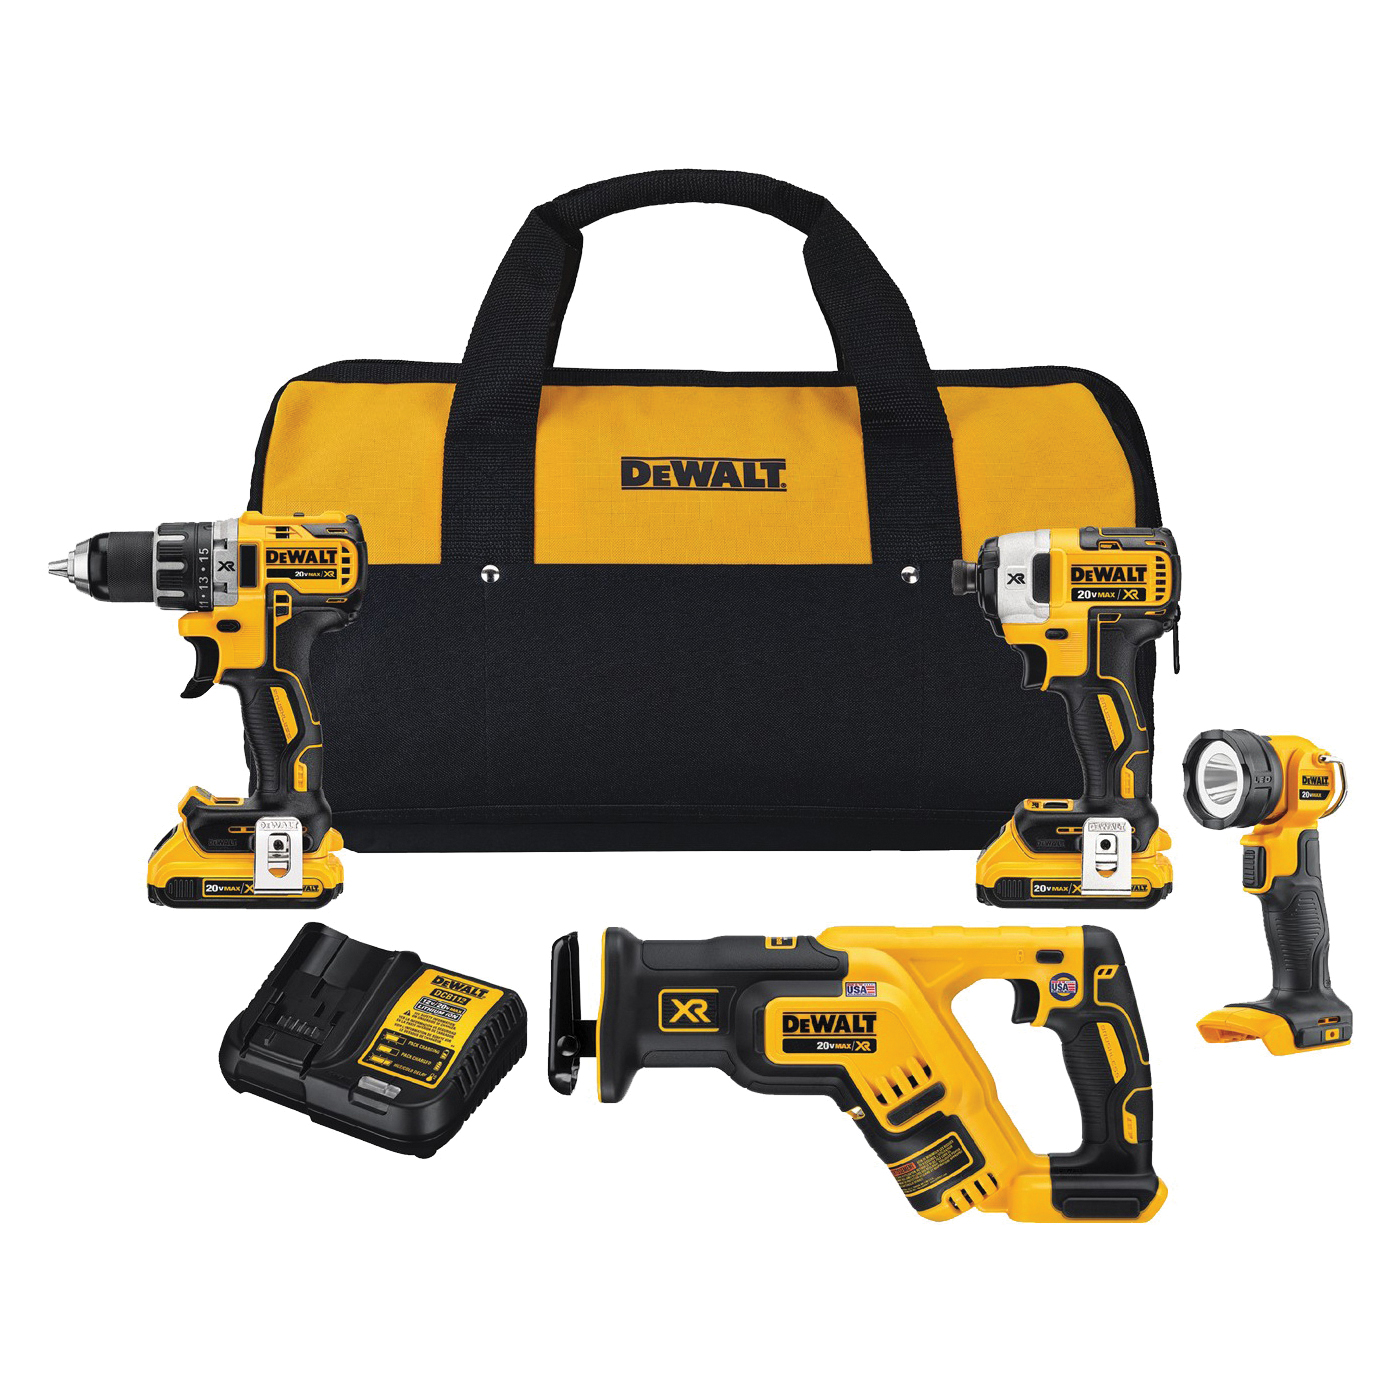 Picture of DeWALT DCK484D2 Combo Kit, Battery Included: Yes